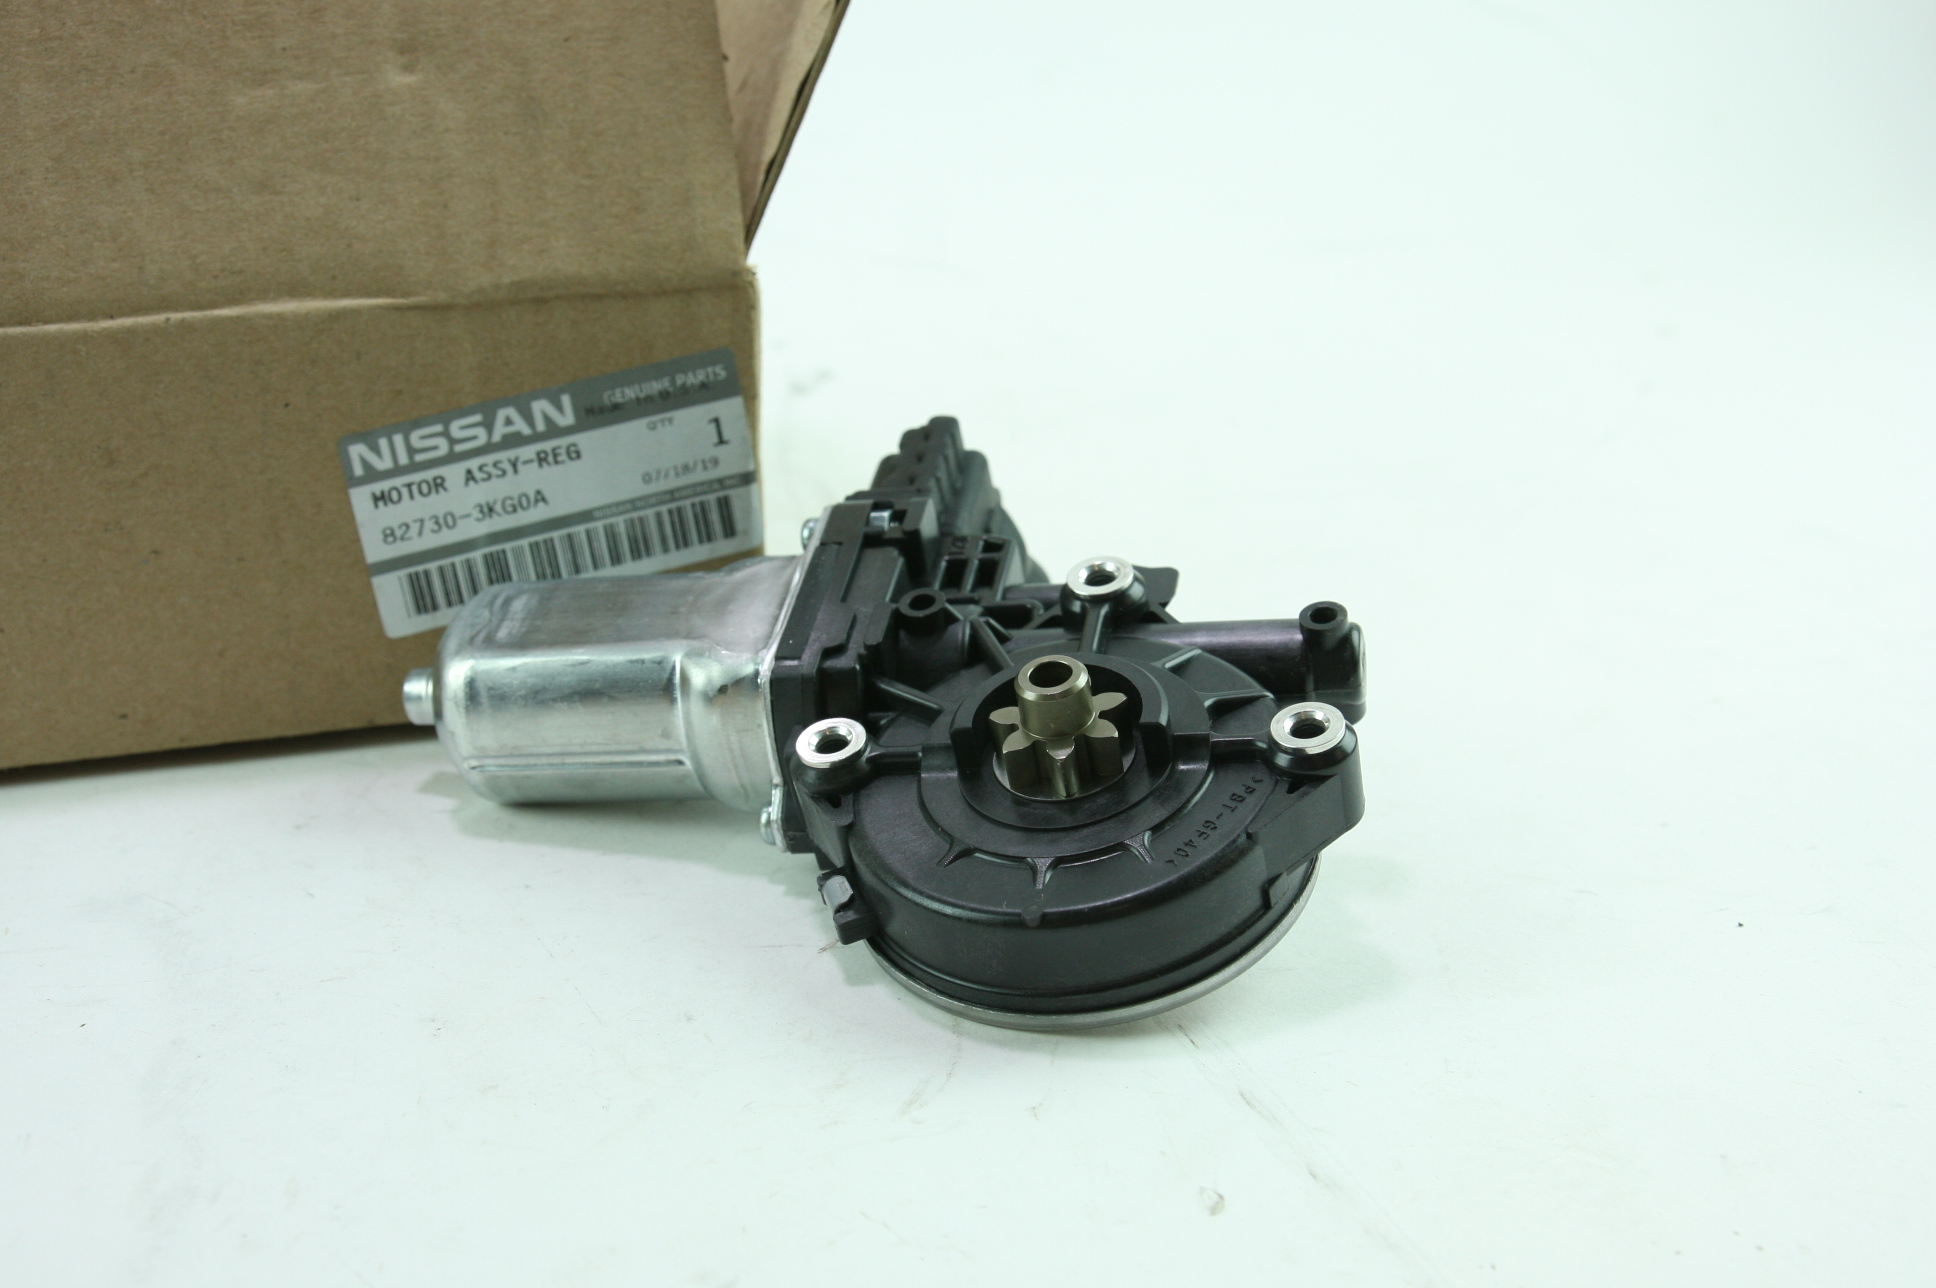 * Genuine Nissan 82730-3KG0A Infiniti Window Motor New OEM Fast Free Shipping - image 1